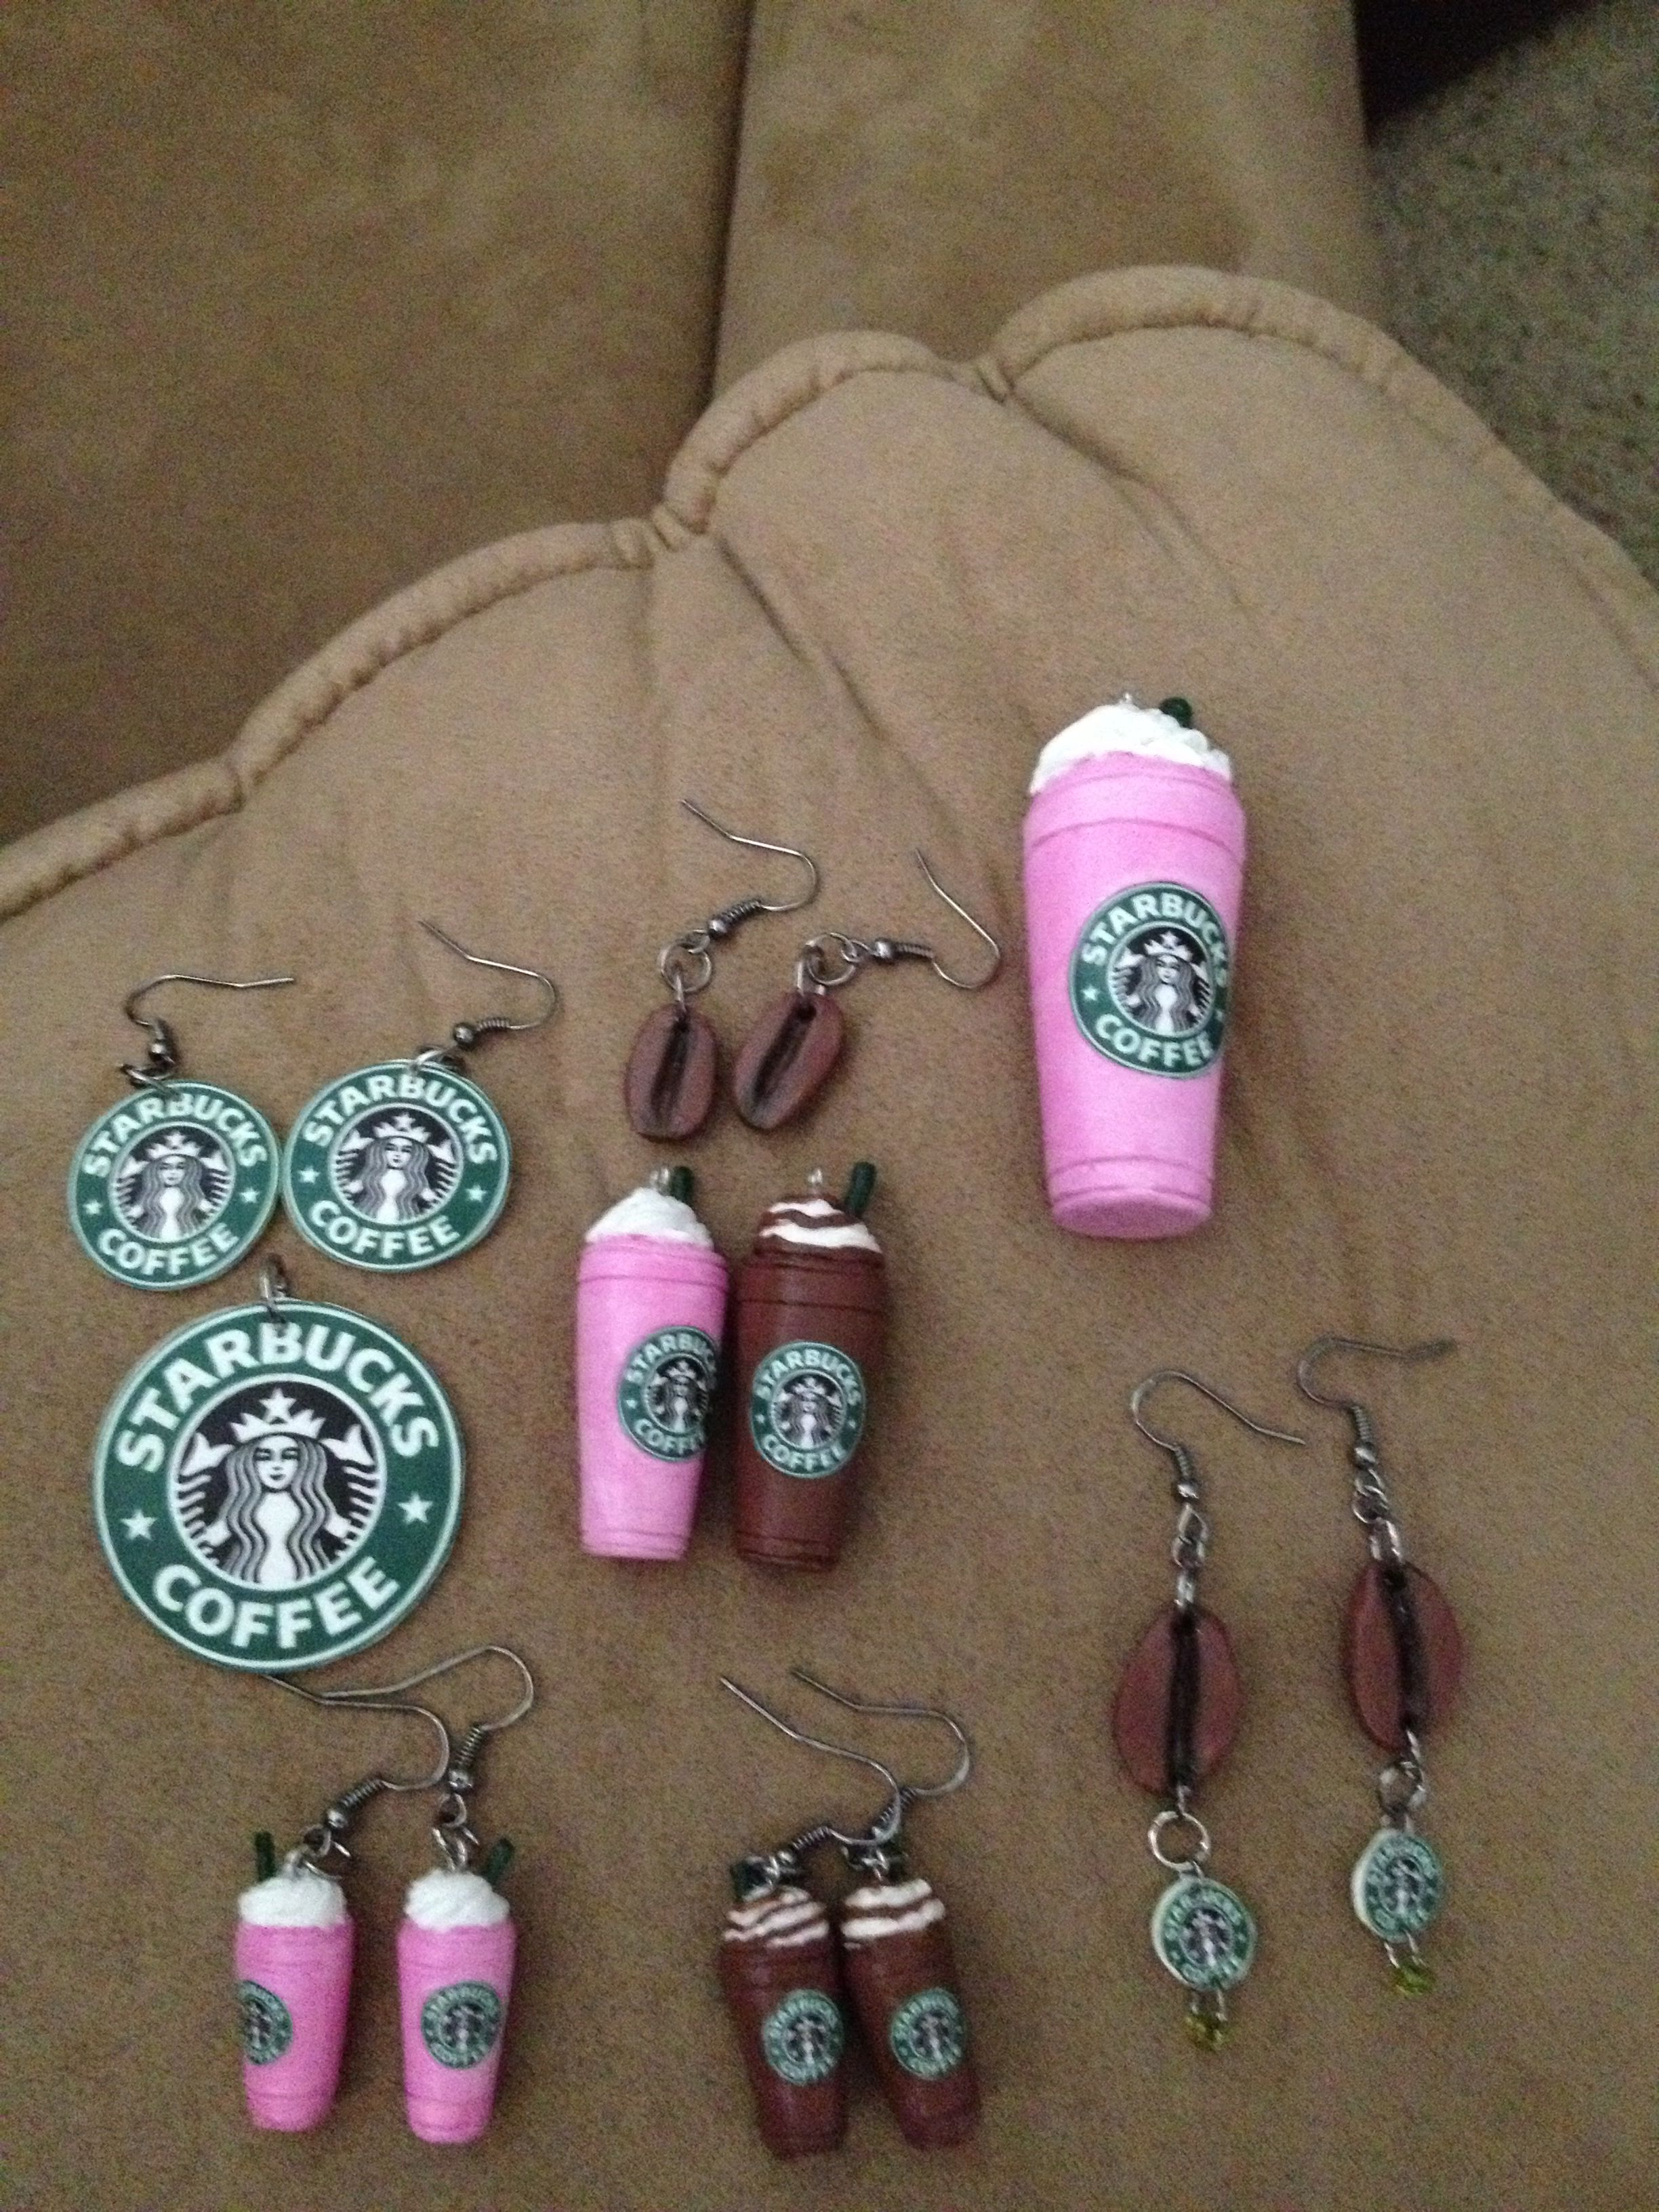 Starbucks jewelry!!!!  Made with oven bake clay.